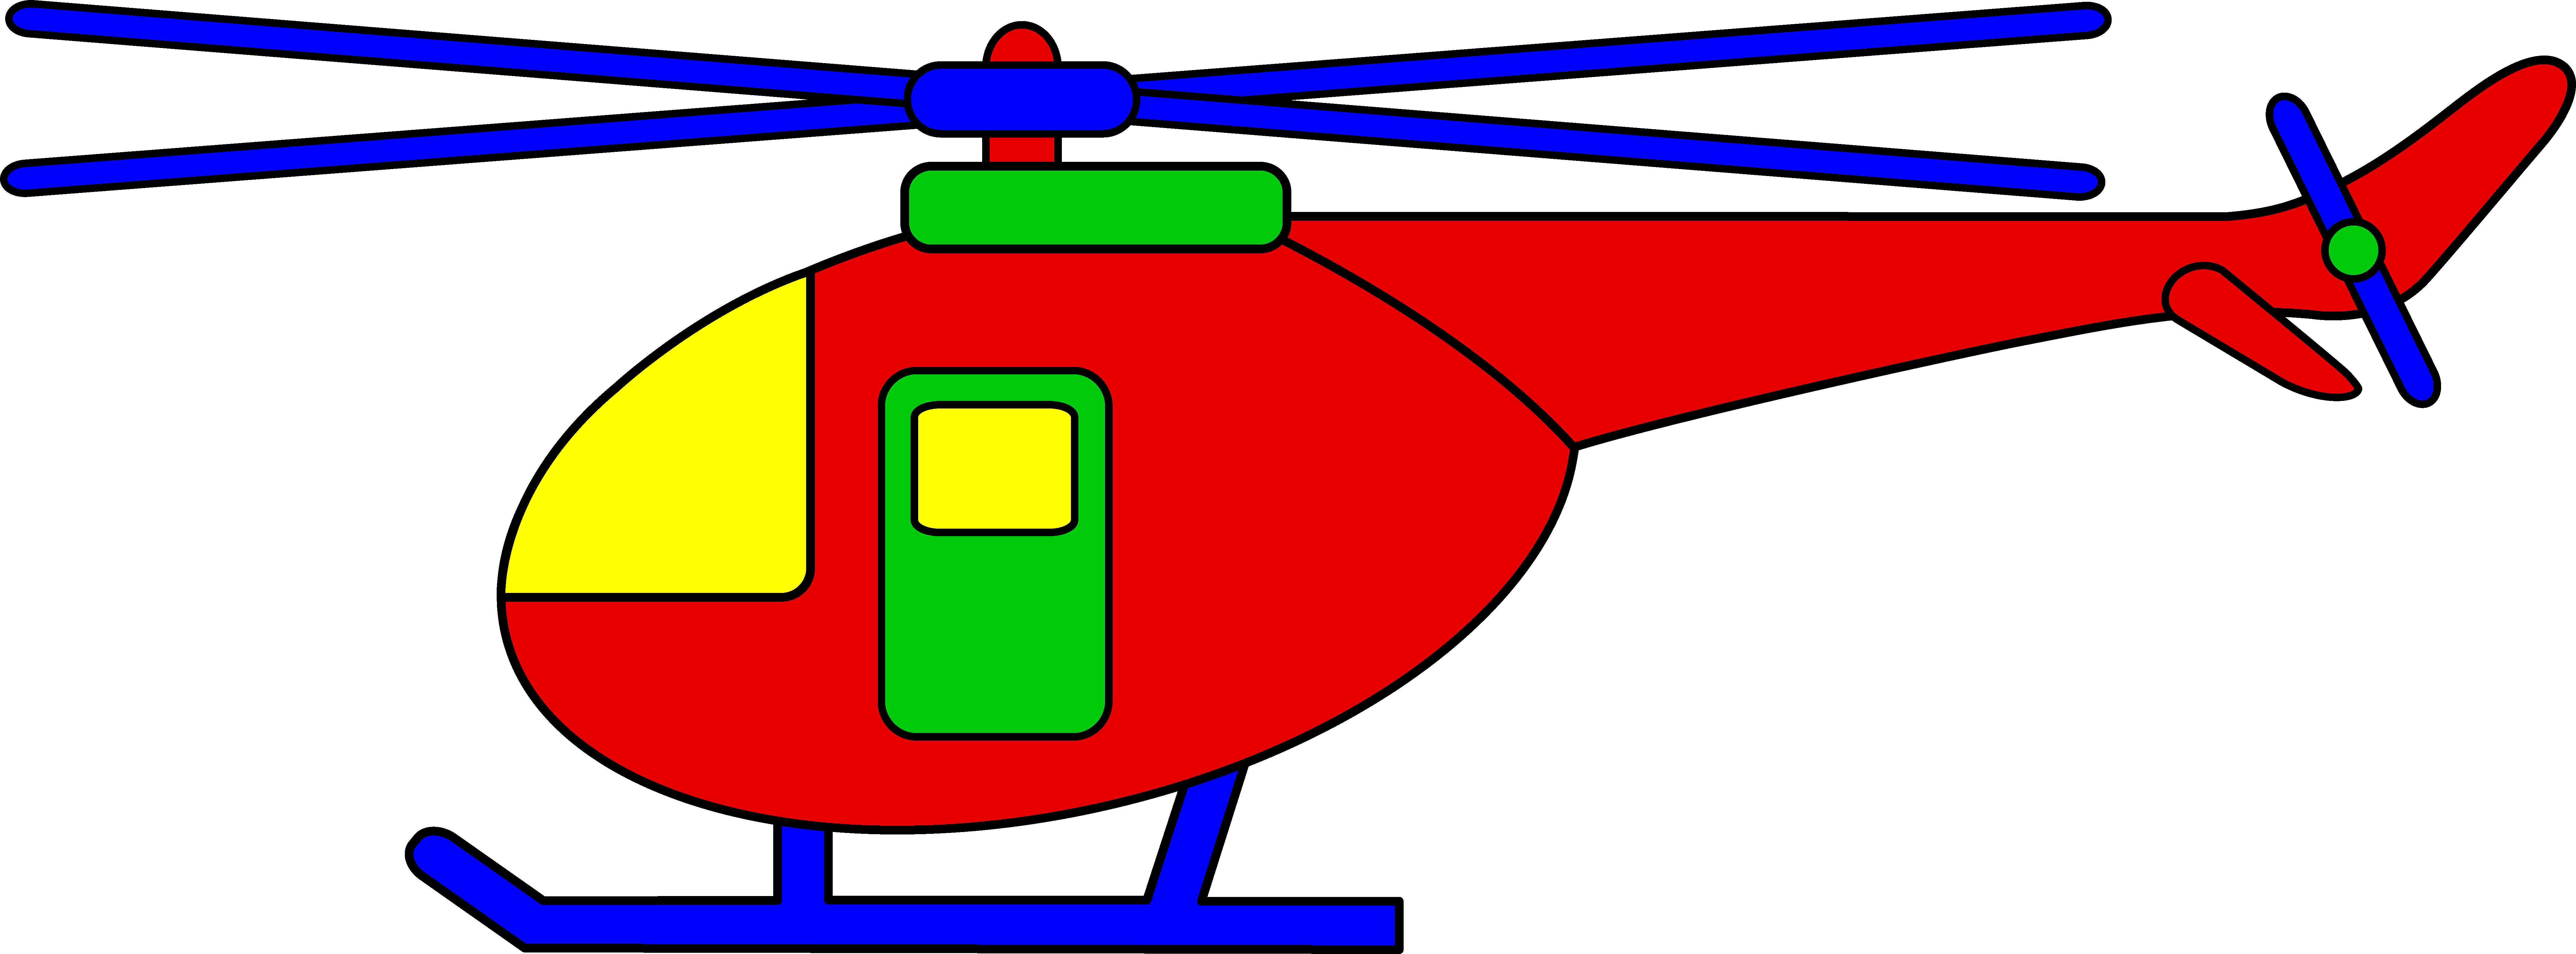 Helicopter clipart #7, Download drawings